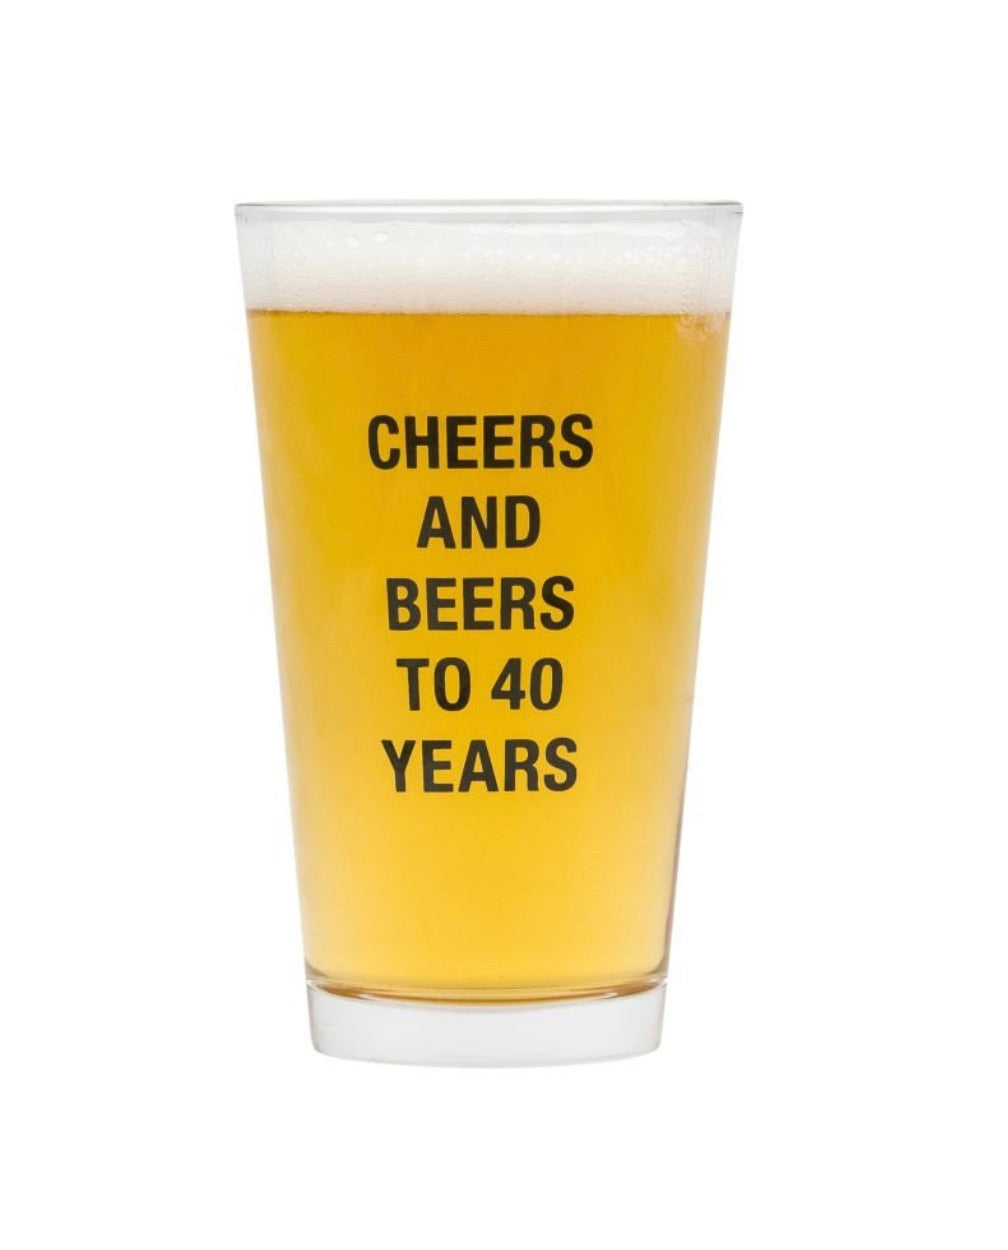 Cheers and Beers to.... Years!